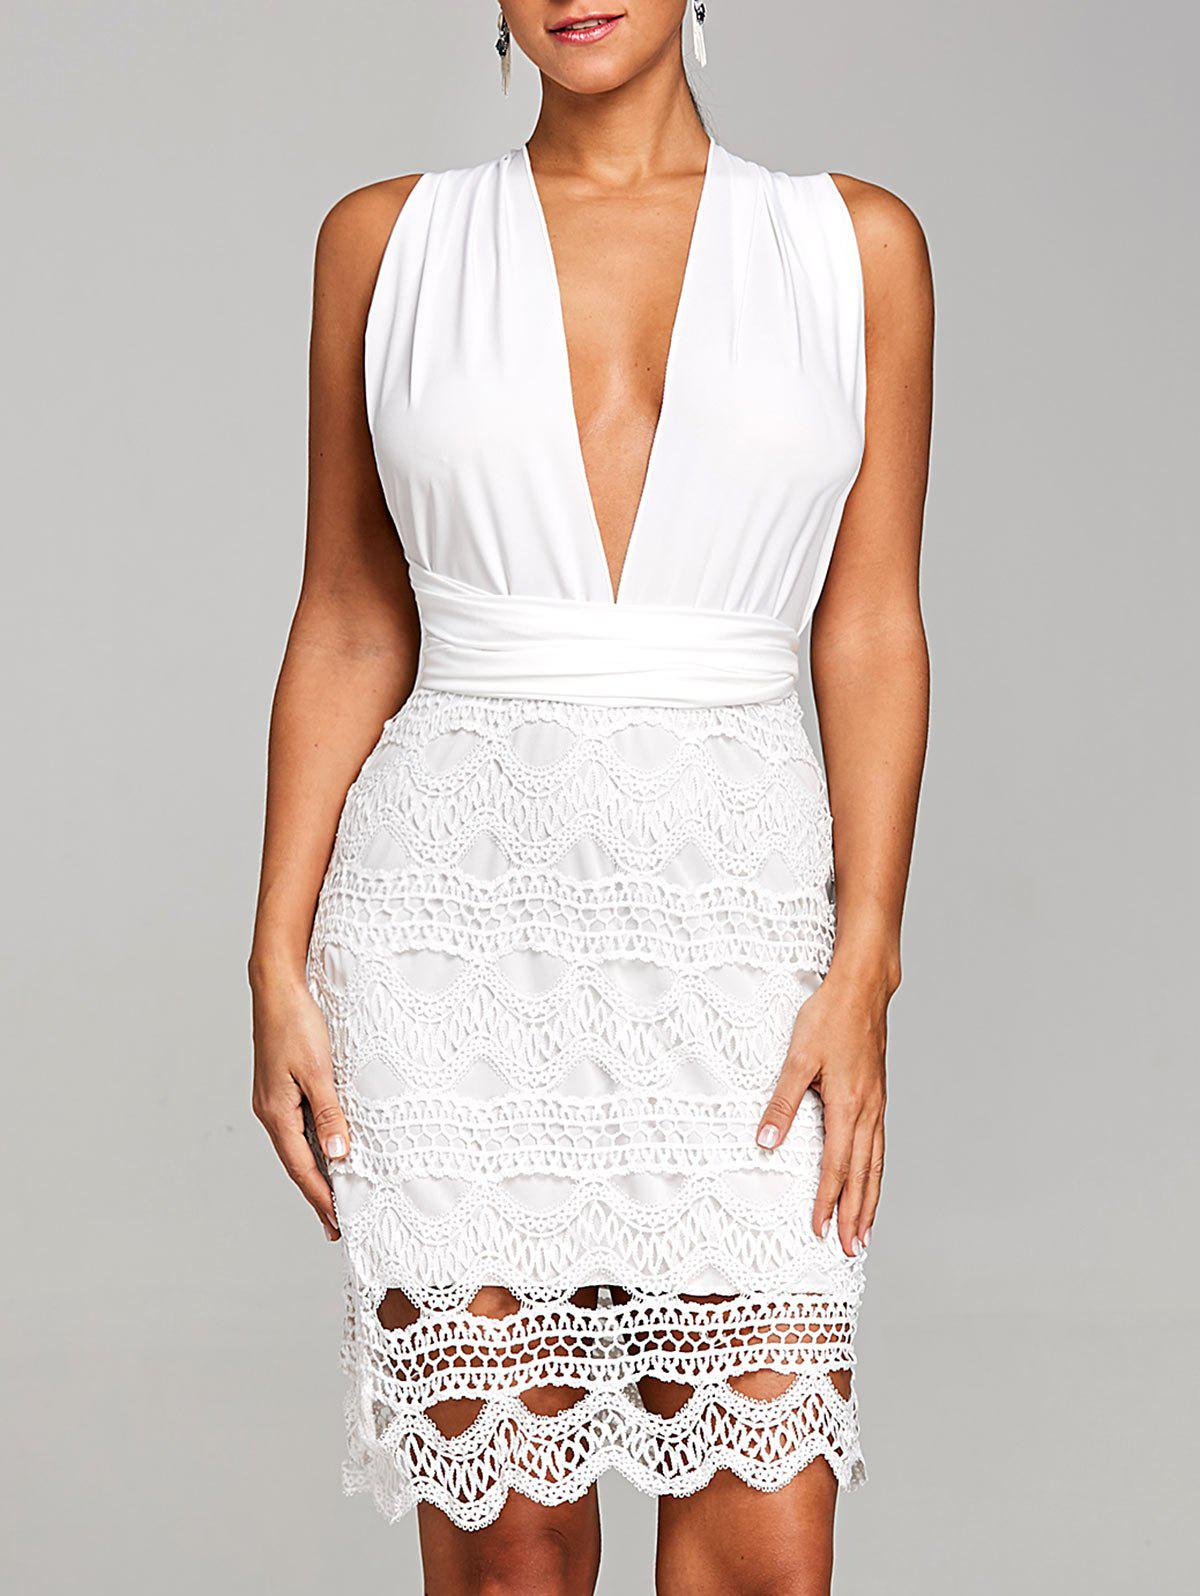 Scalloped Crochet Low Cut Club Dress - WHITE S